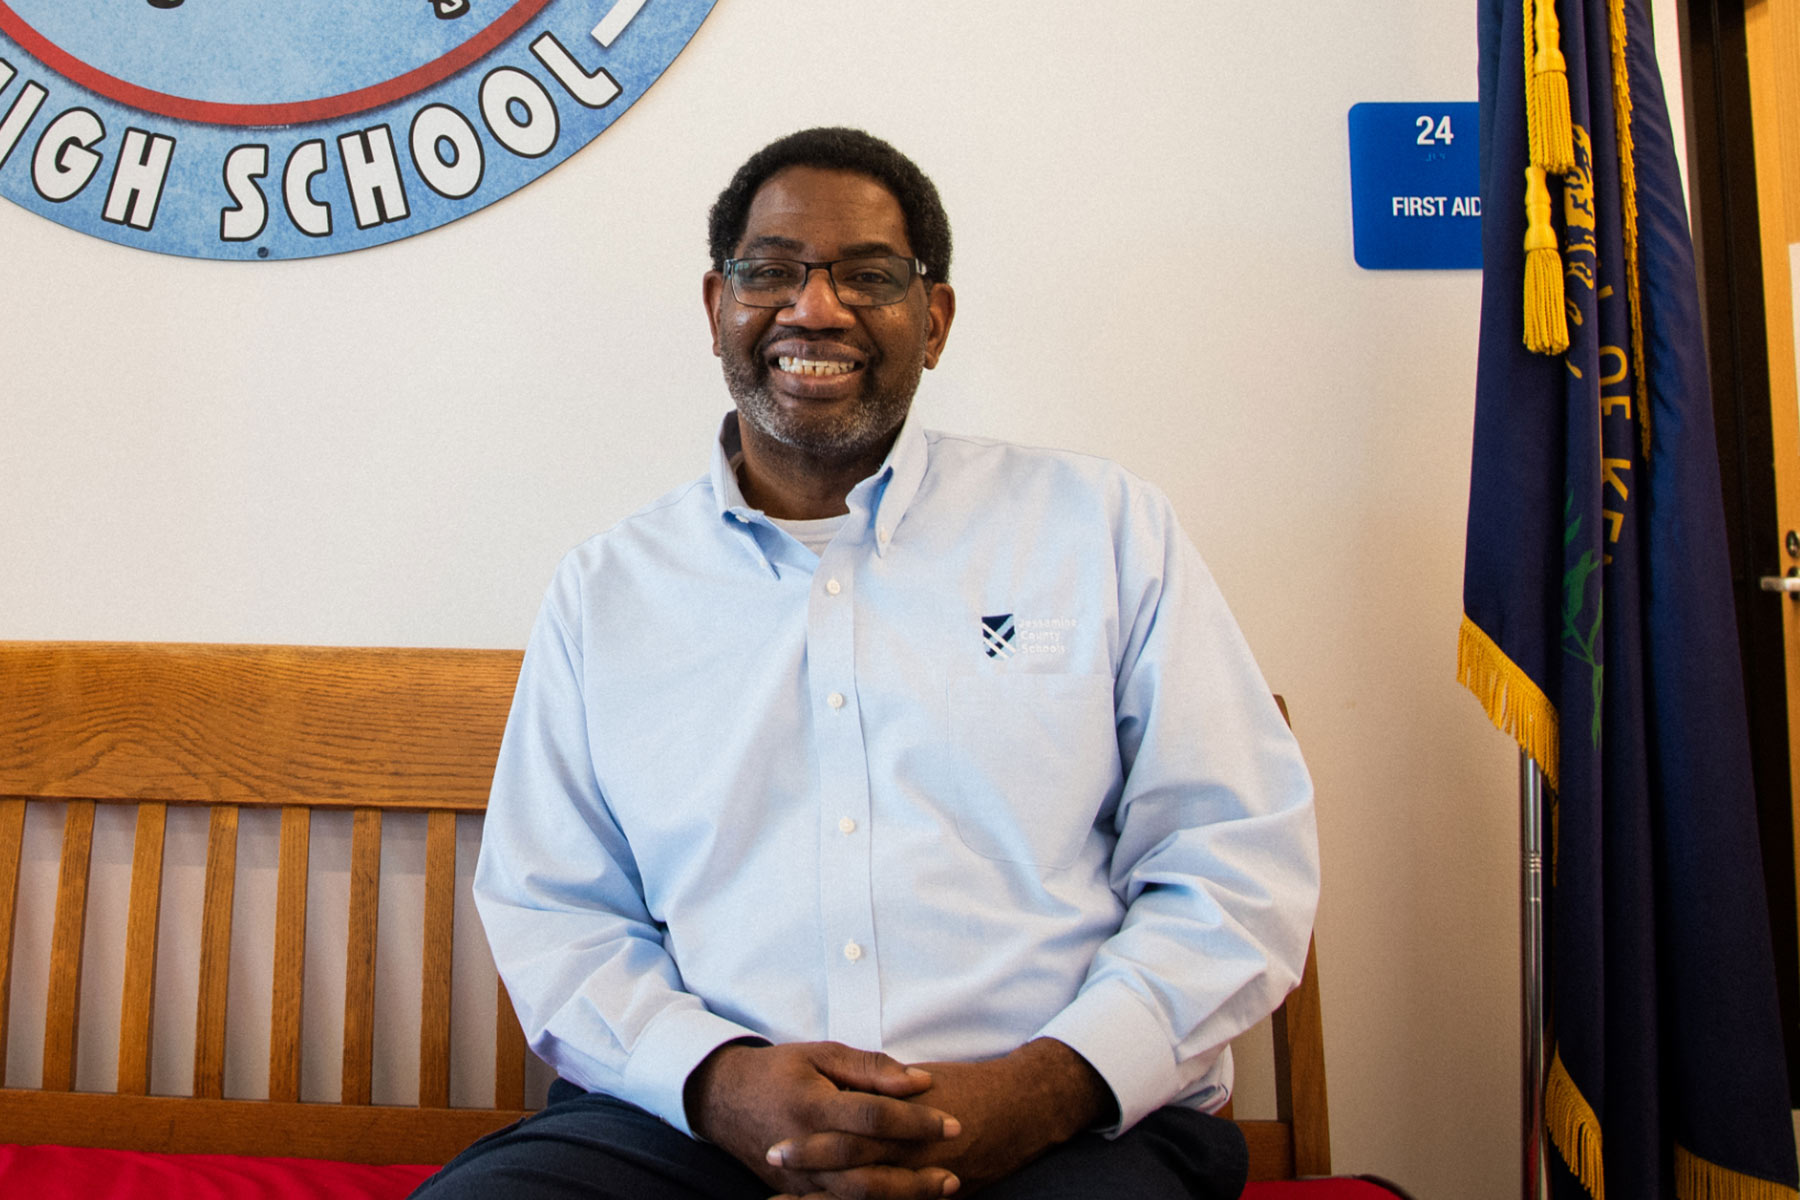 Ivan Graves, a 60-year-old Black man with short dark hair, black glasses, and a short, graying beard, sits on a bench in the hallway of a high school. He is wearing a light blue collared button-down shirt and is grinning.